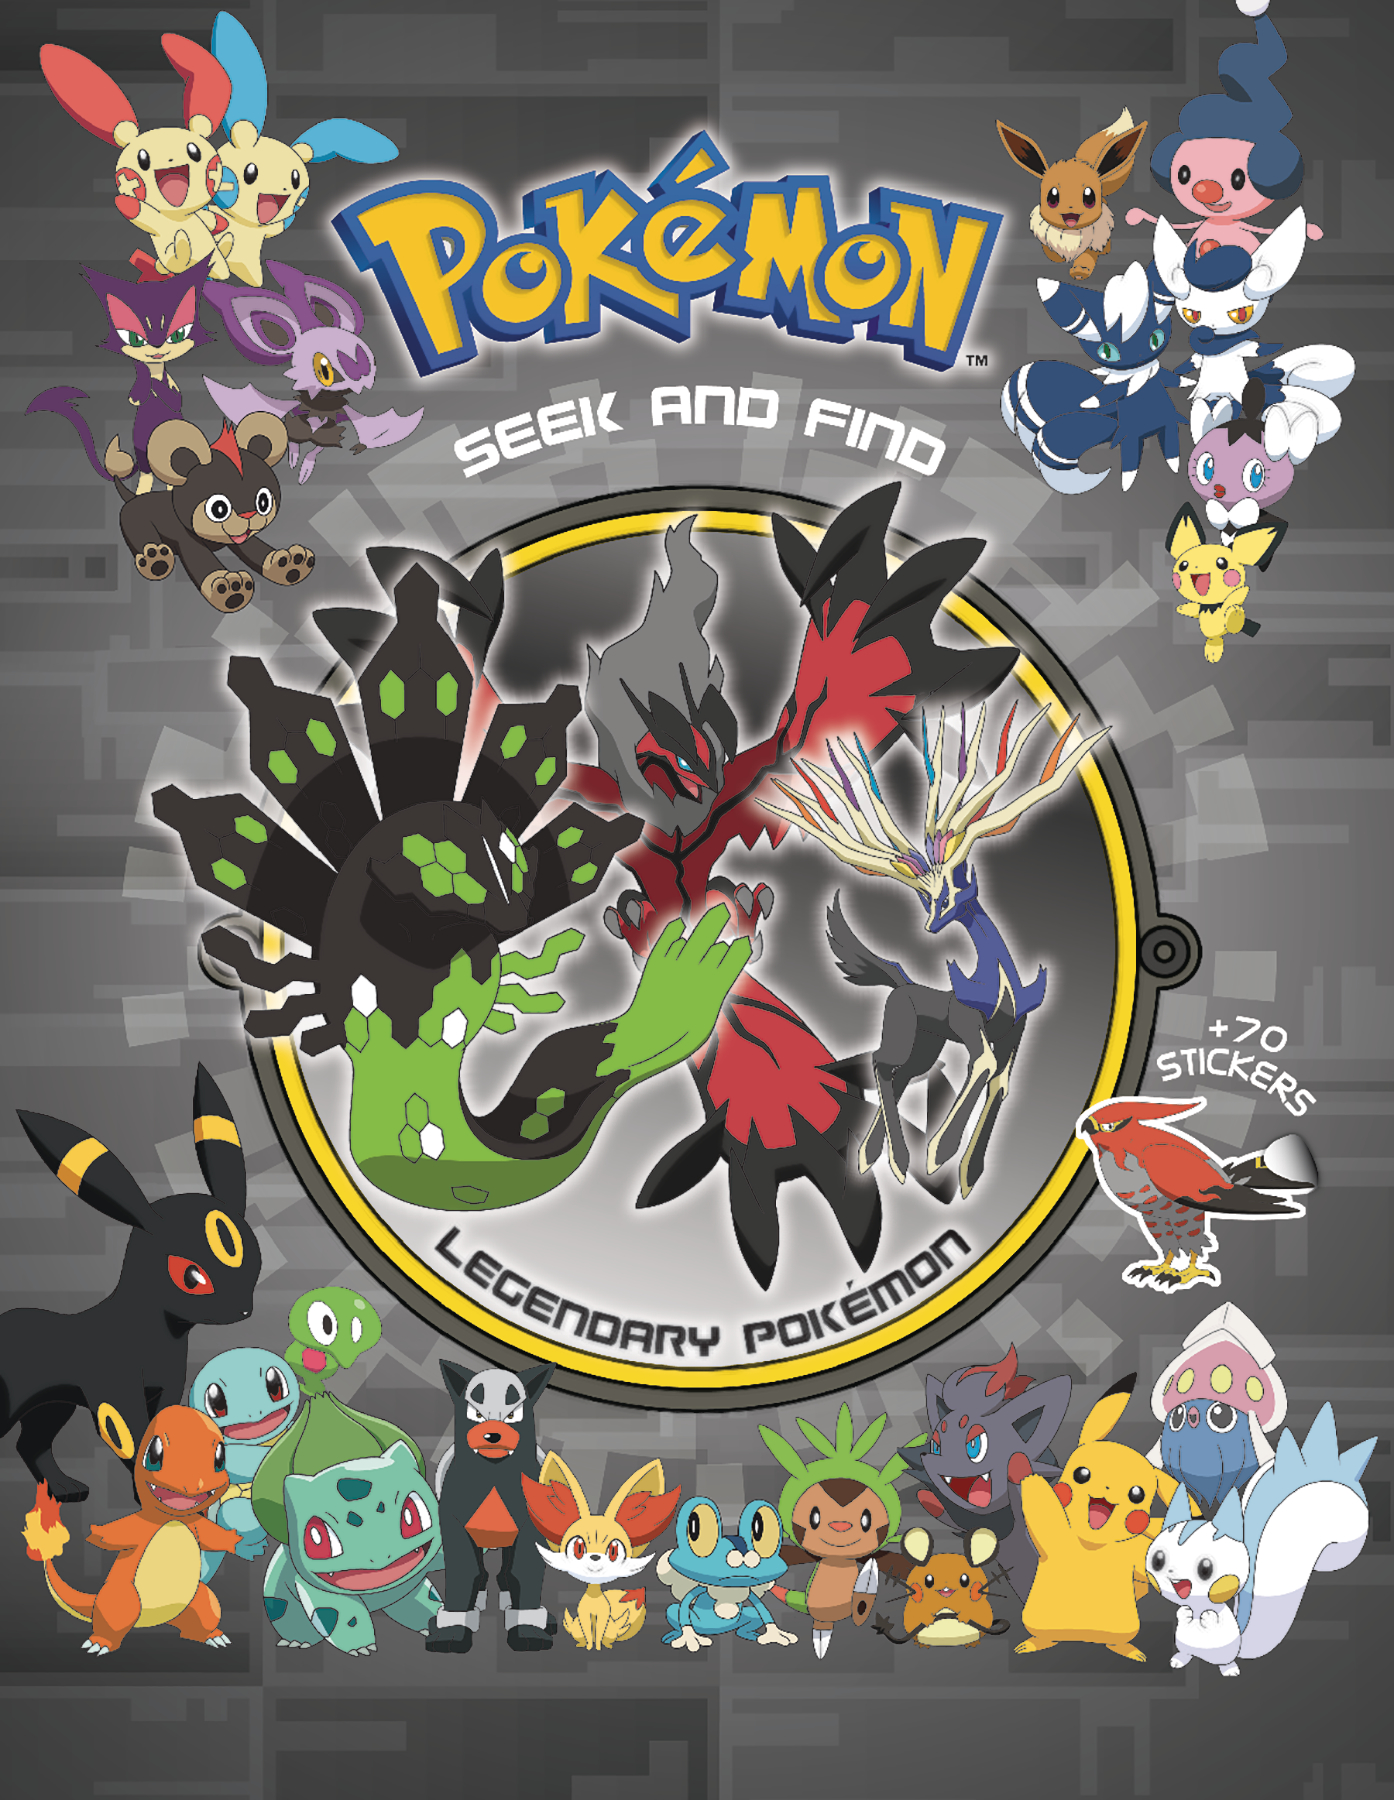 POKEMON SEEK & FIND HC LEGENDARY POKEMON